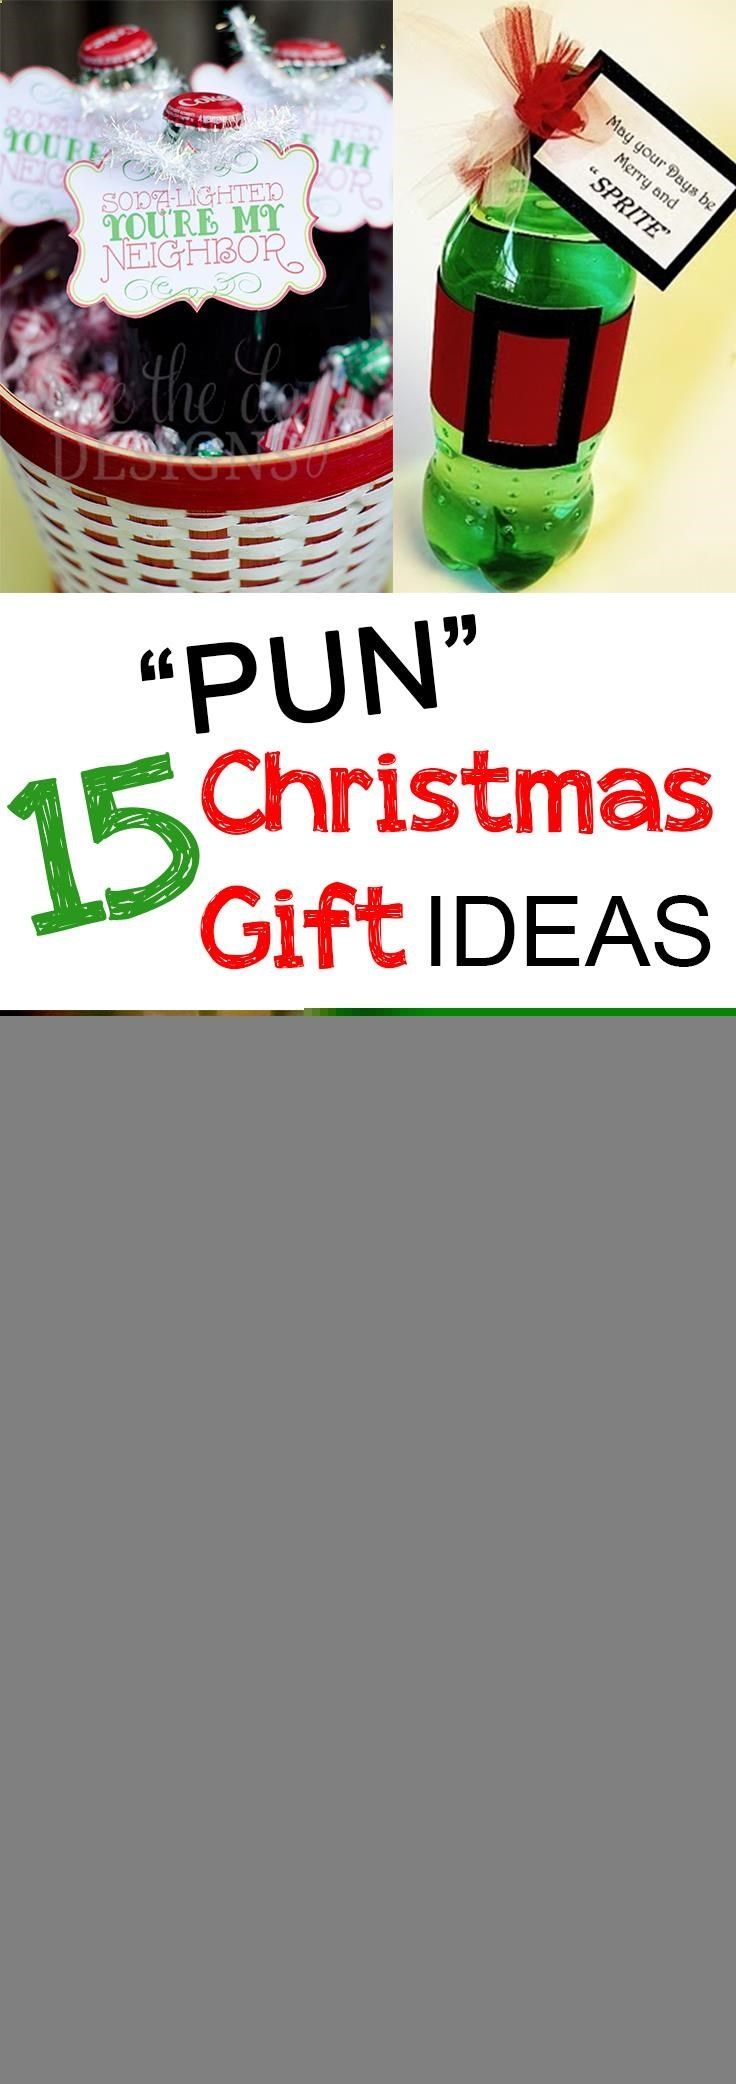 Punny Christmas Gift Ideas perfect for friends, neighbors, teachers ...